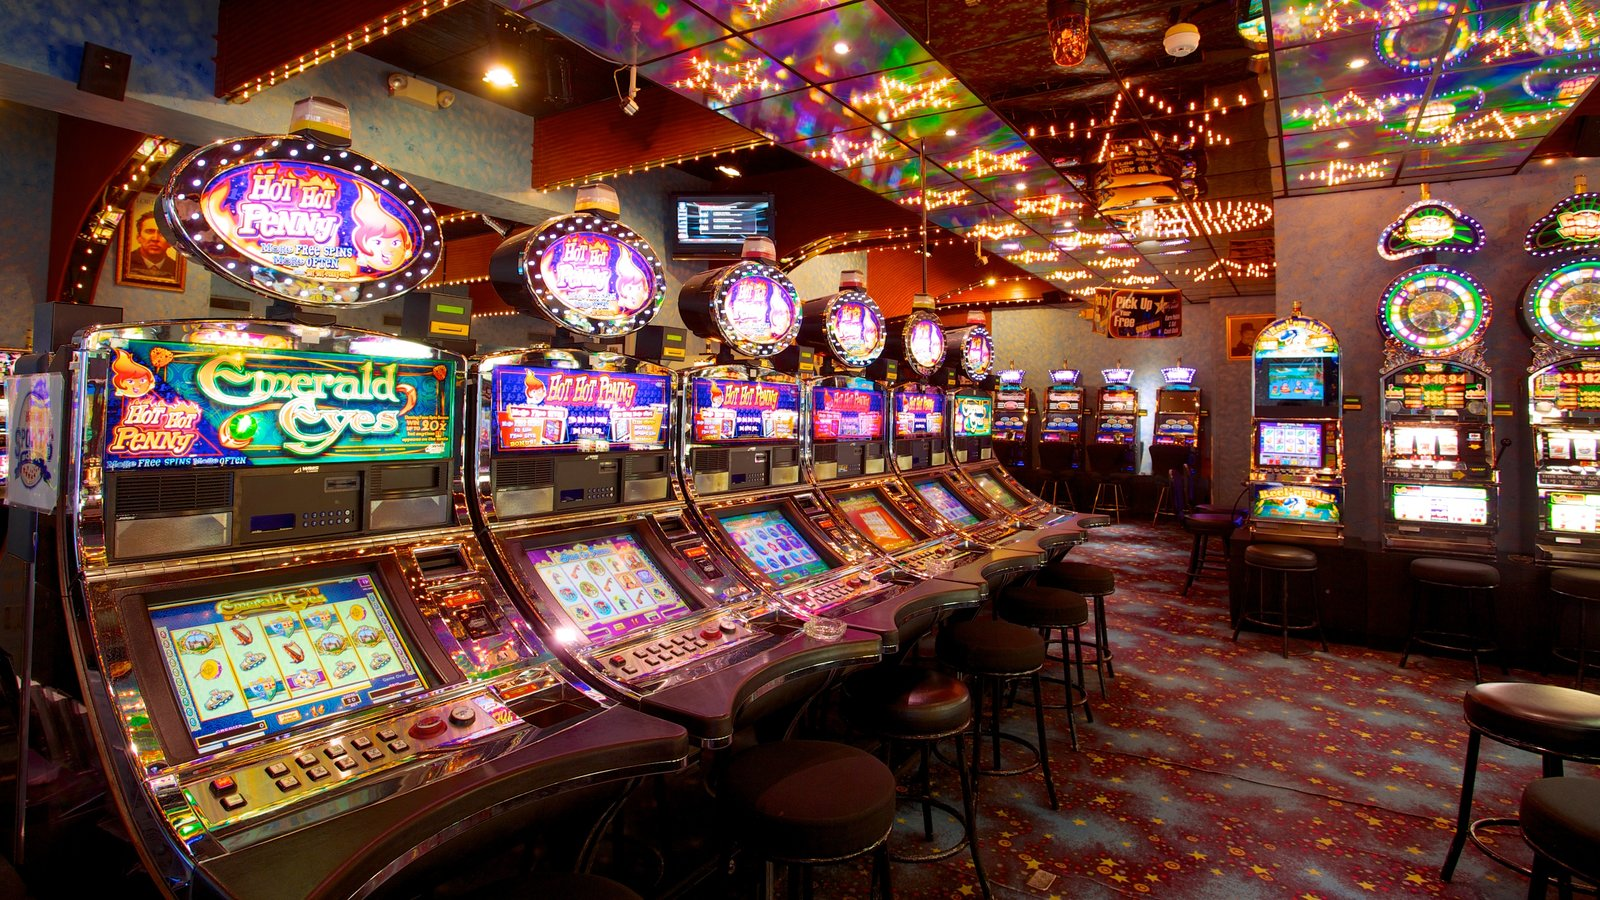 CASINO PROMOTIONS NEWS: In 5 Easy Steps